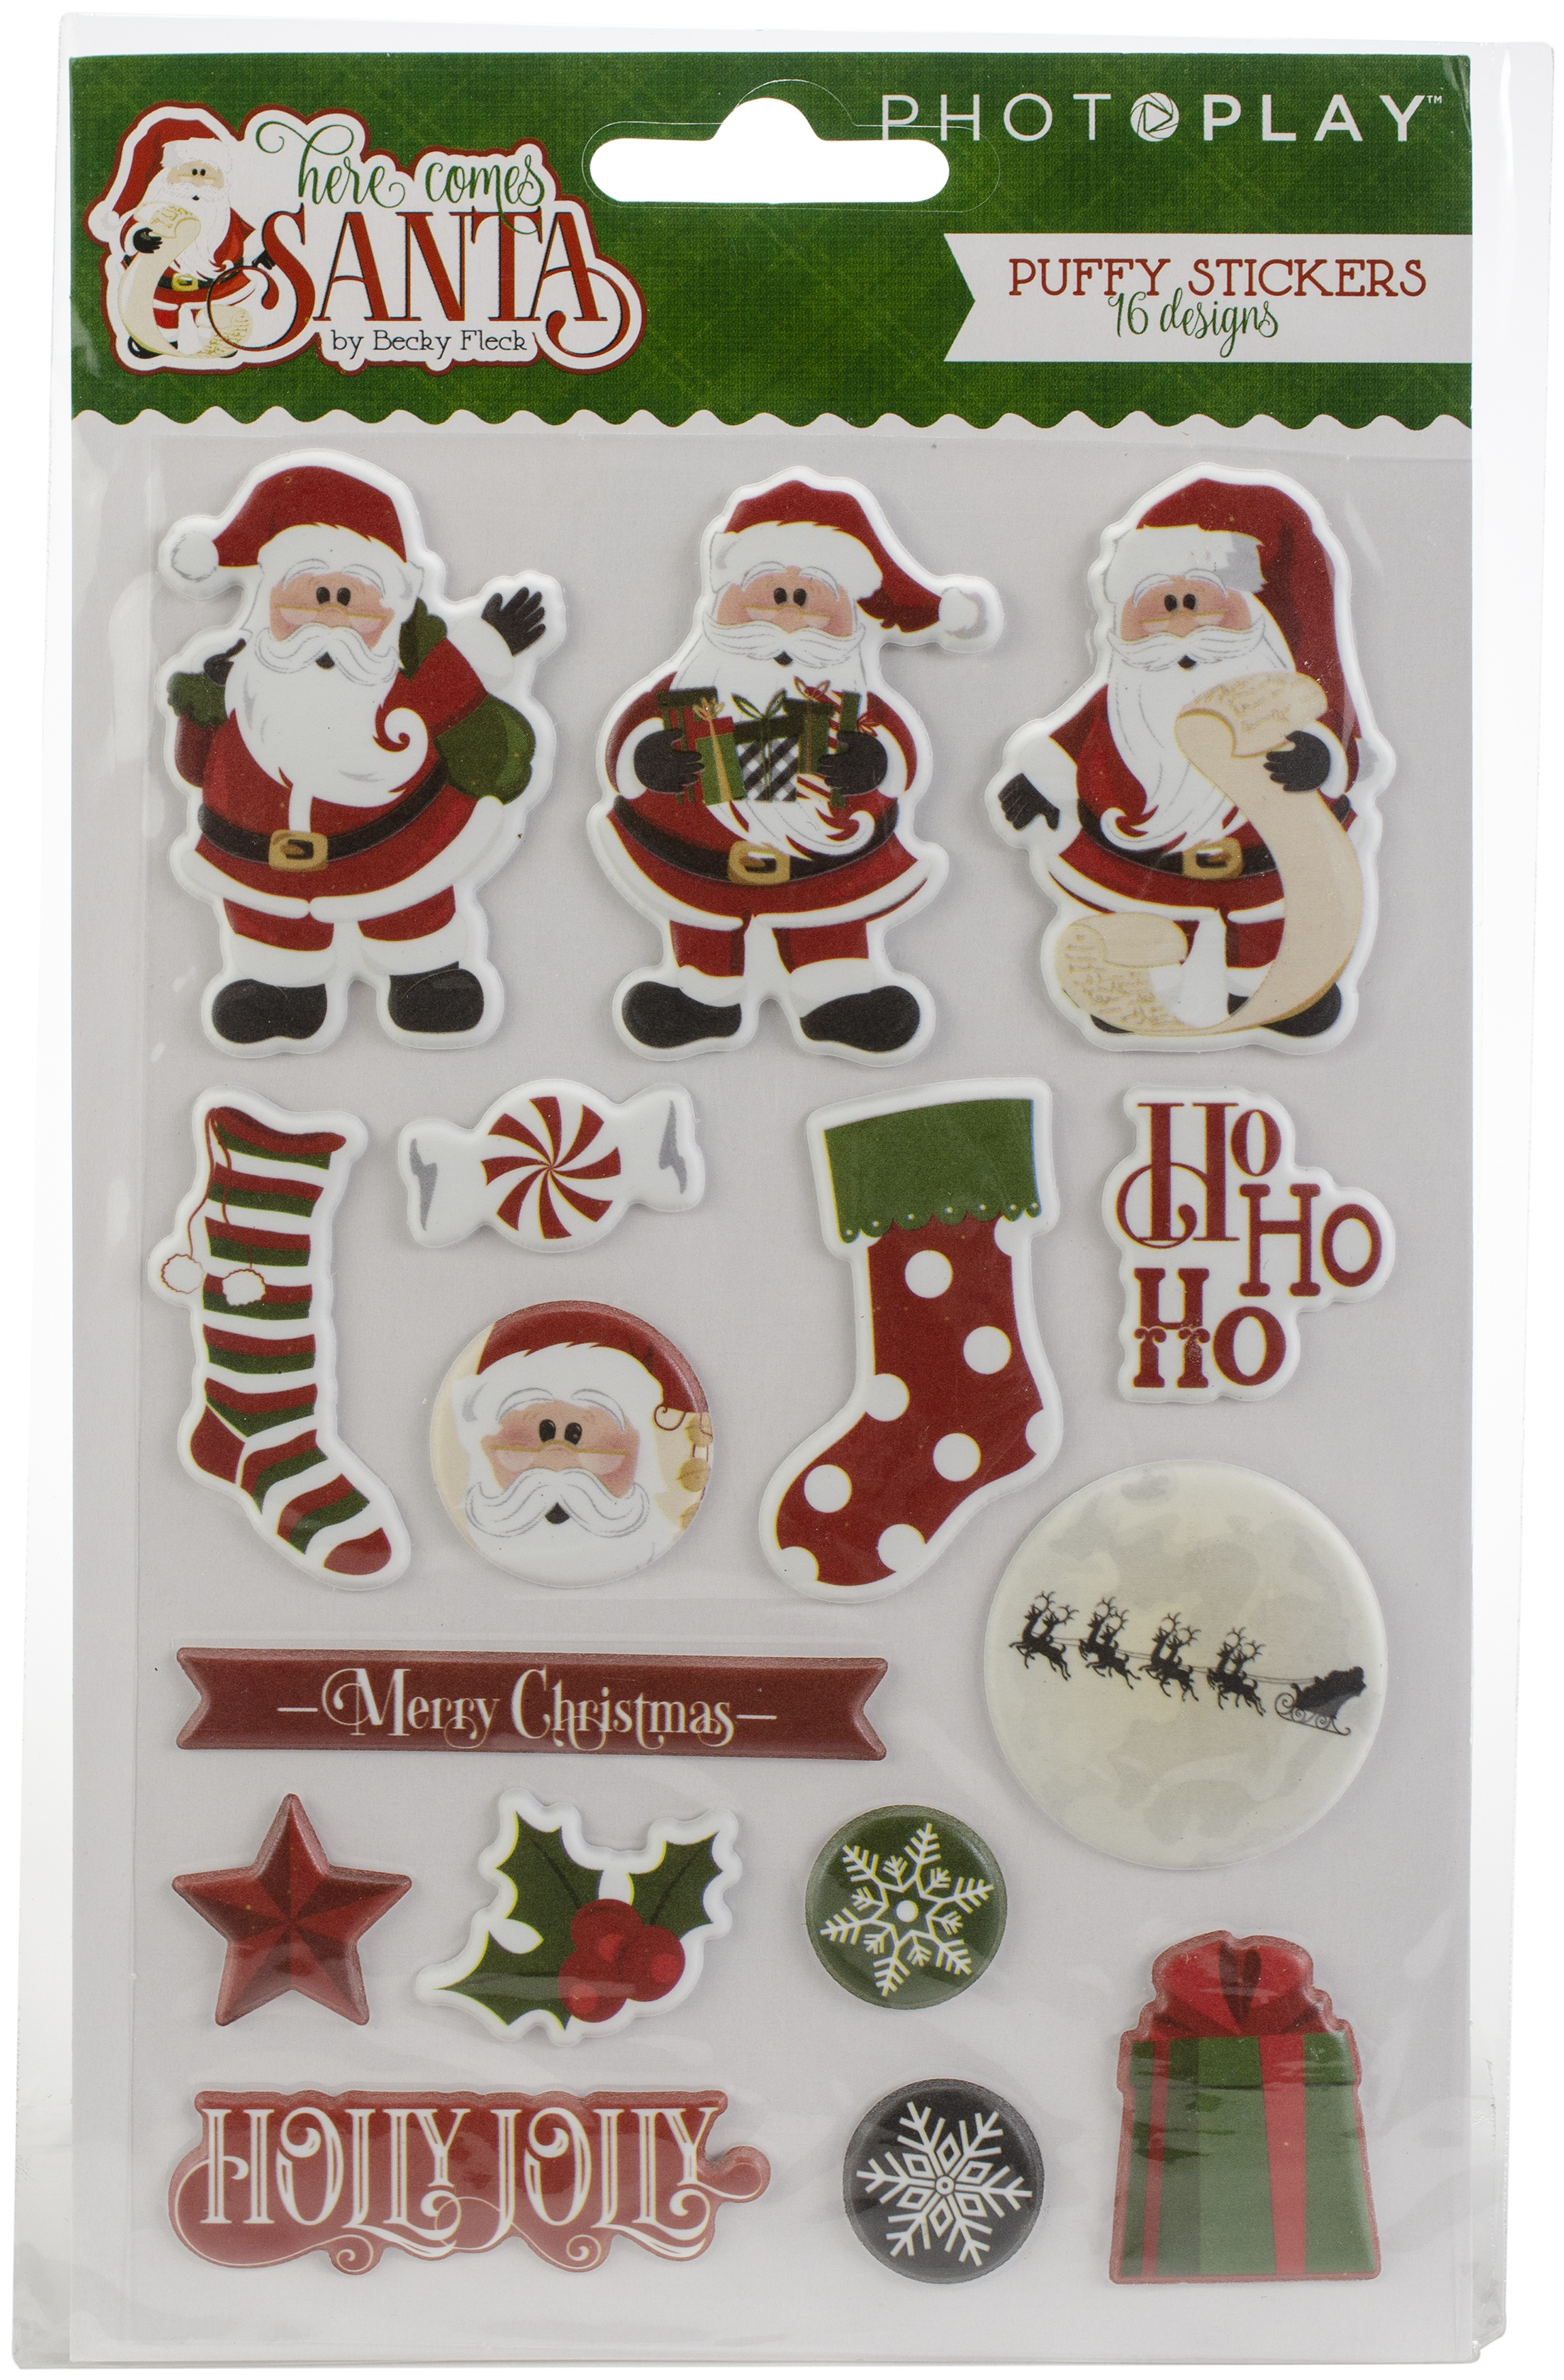 Here Comes Santa Puffy Stickers-